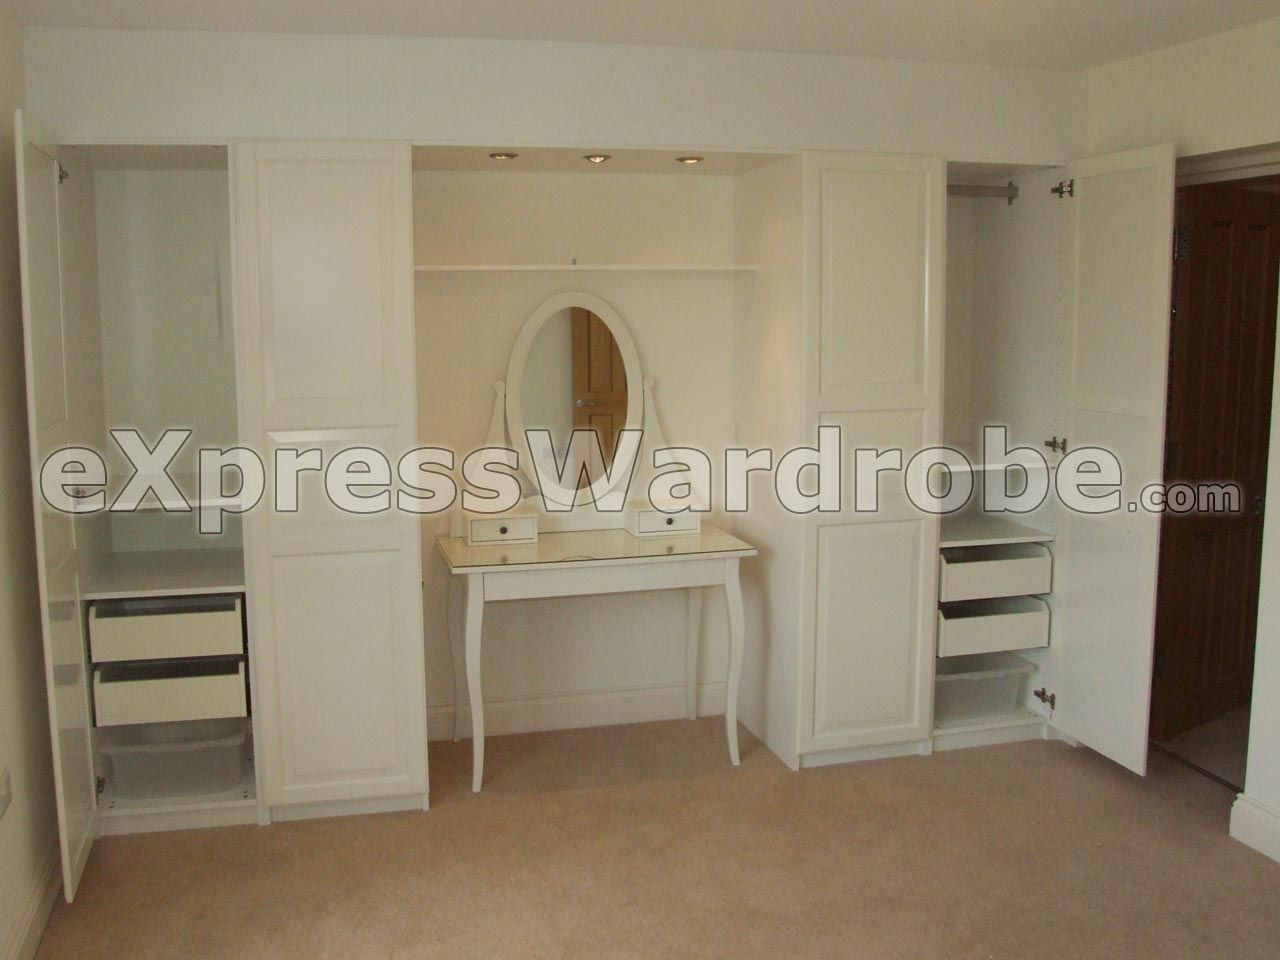 wardrobe and about frame best in baby trend diy nursery adorable wardr look uk ideas cupboard doors sliding bespoke to make glamorous alcoves closets cupboards built fitted bedroom better with wardrobes how youtube idea